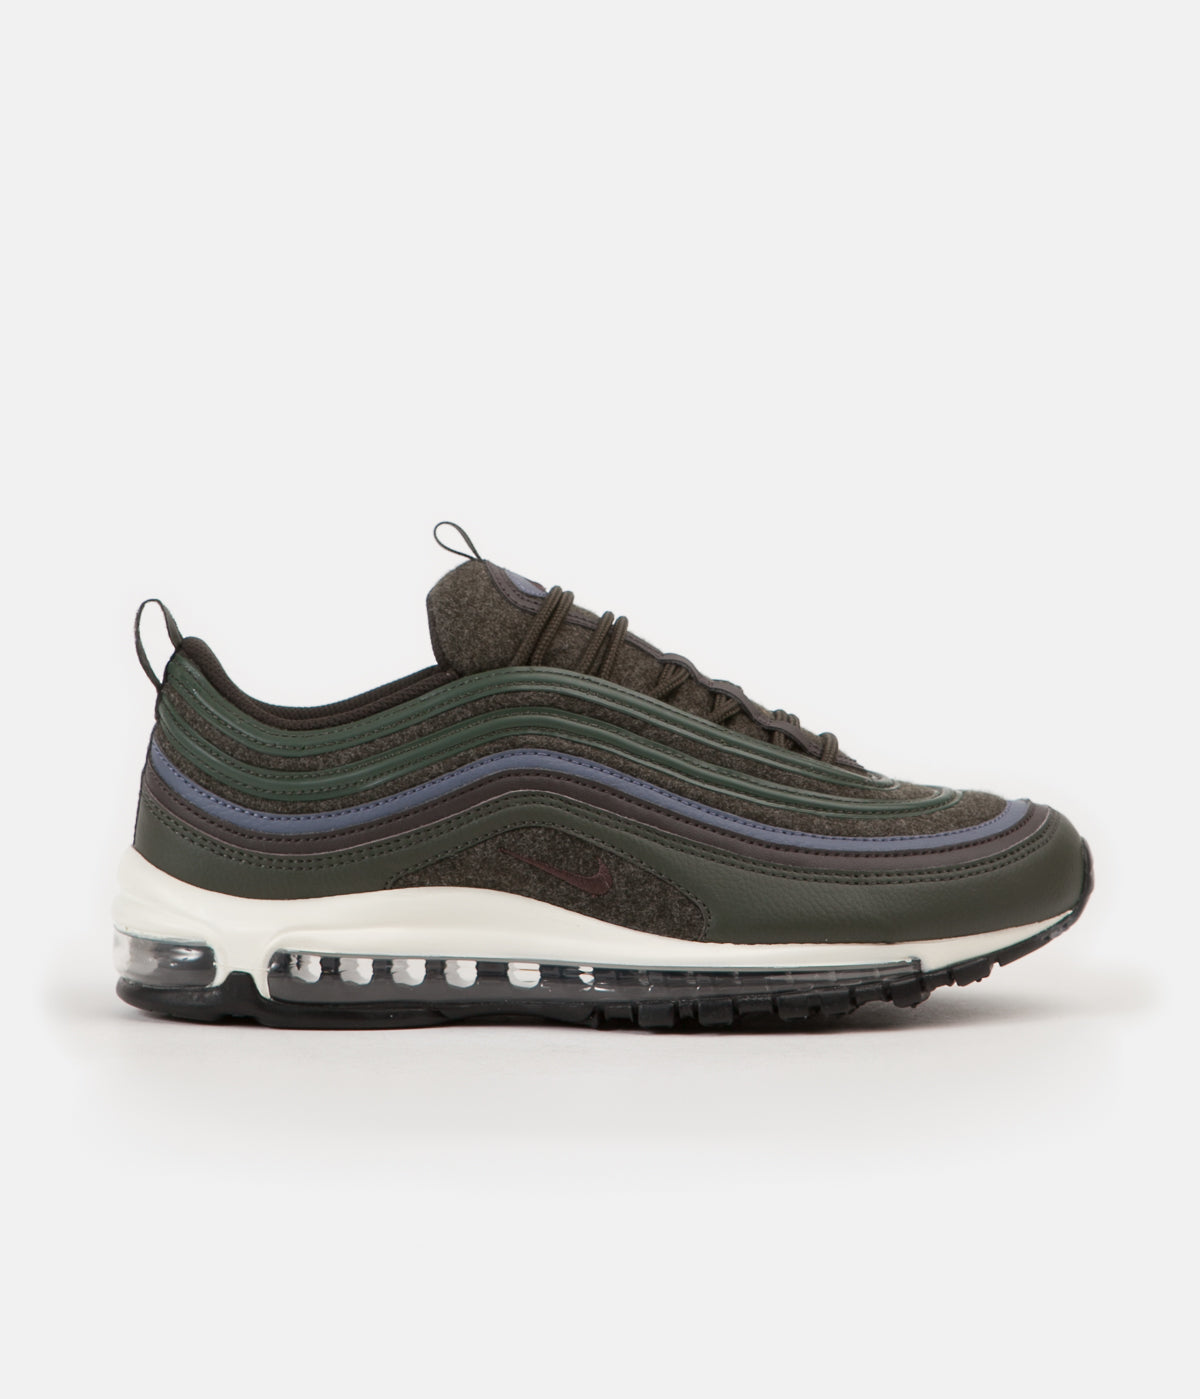 best price nike air max 97 lux black charcoal 14645 5758e